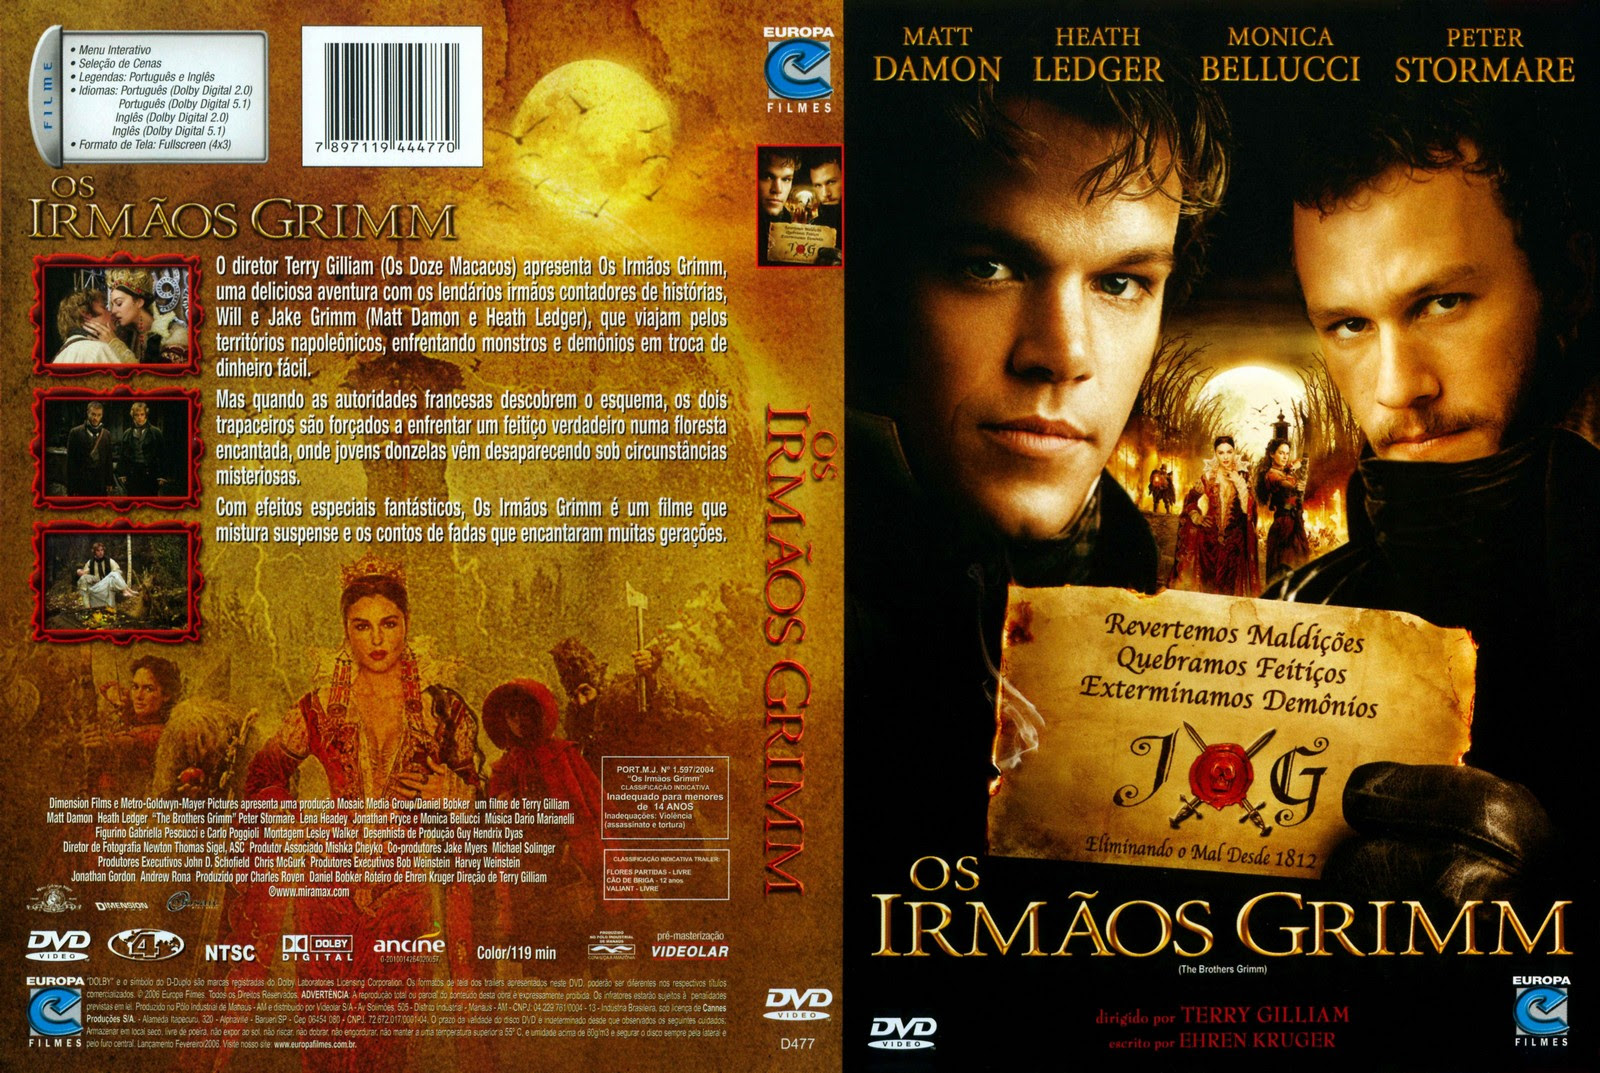 hOn50mp Os Irmãos Grimm Torrent   DVDRip Dual Audio (2005)